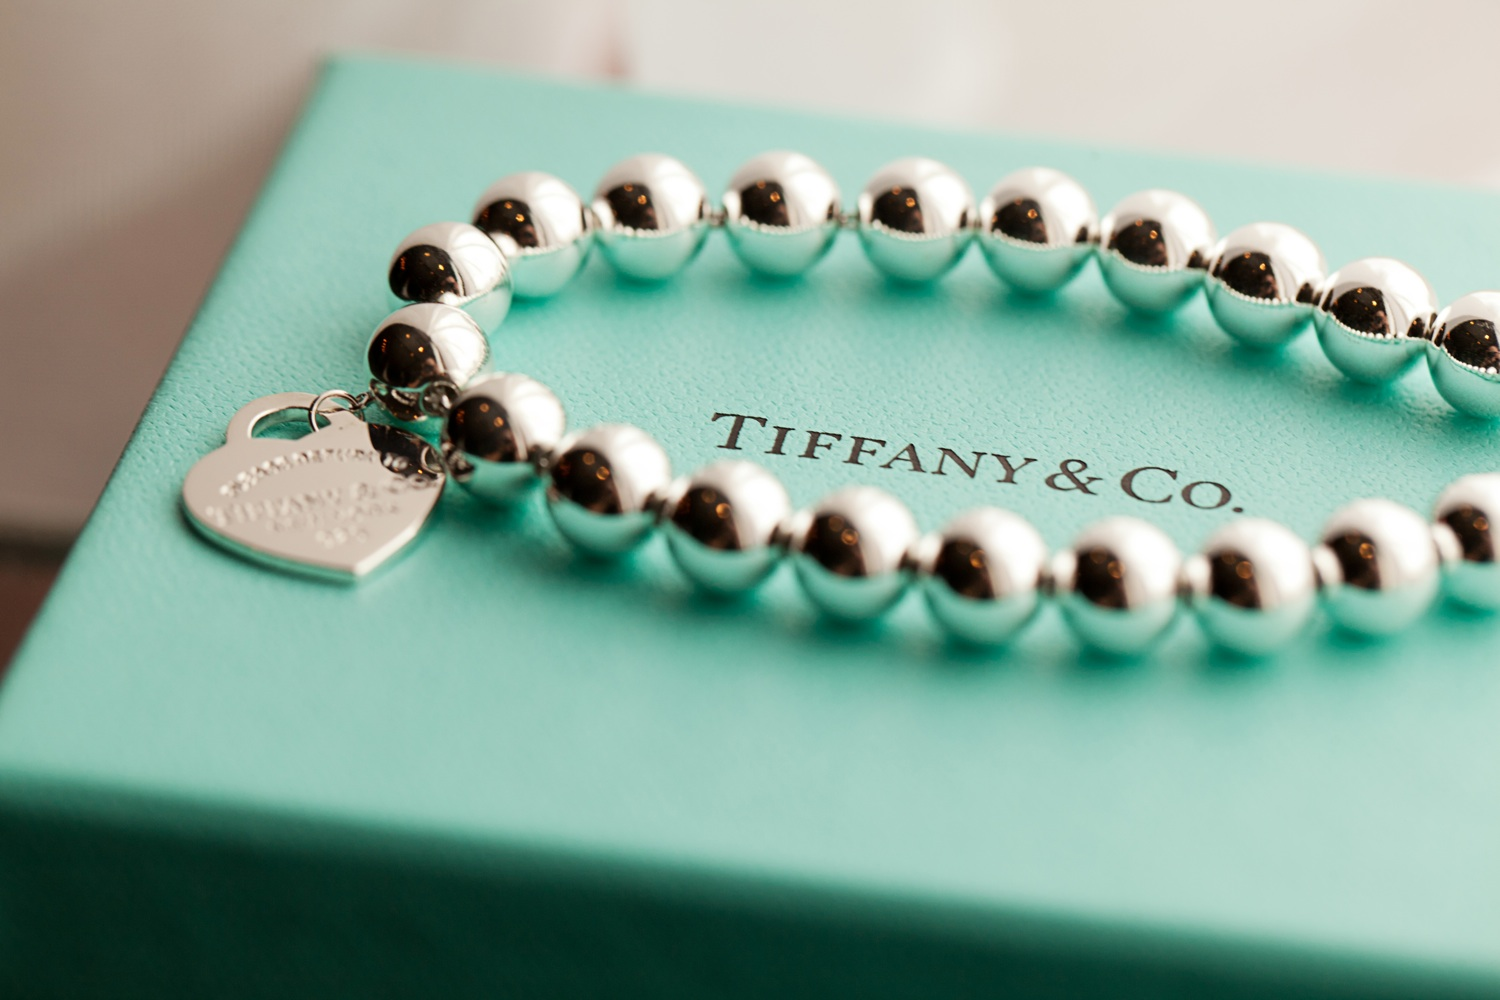 Wedding Gift For Bride To Be : wedding-gift-for-bride-tiffany-bridal-jewelry.original.jpg?1379117265